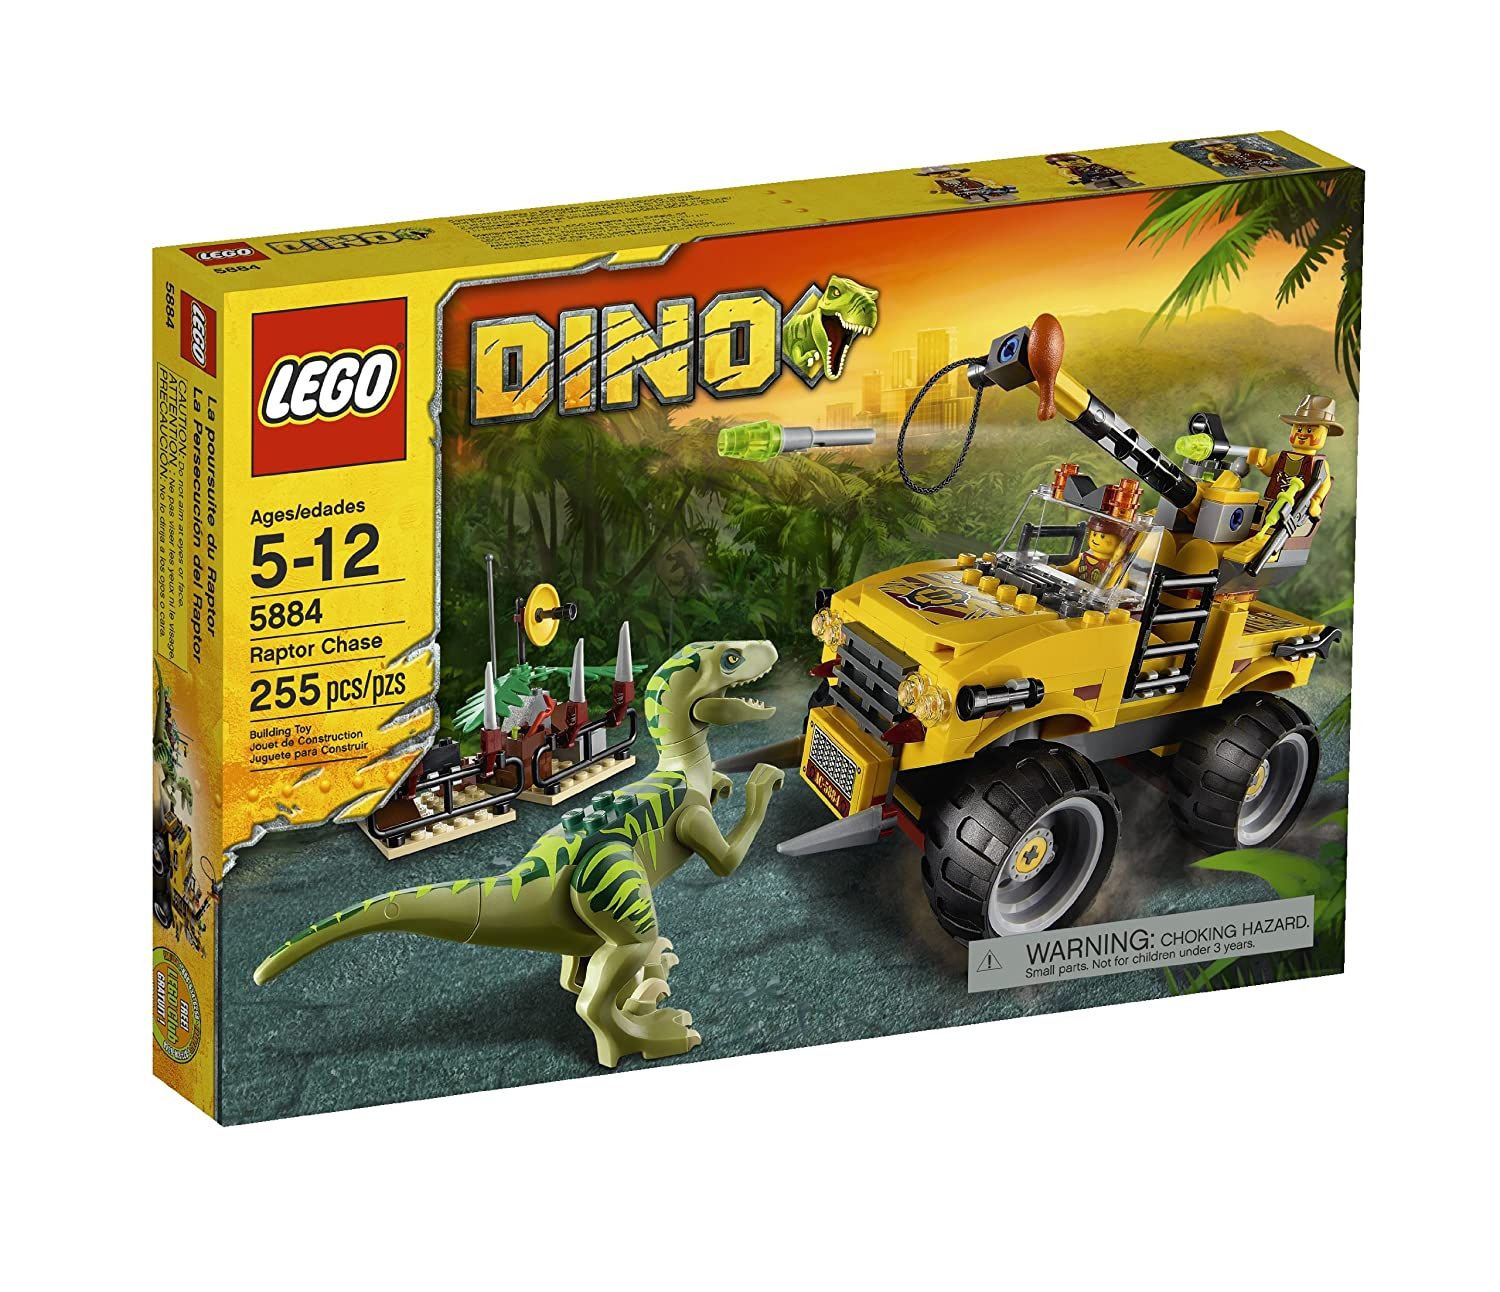 Top 8 Best Lego Dinosaurs Set Reviews in 2020 5